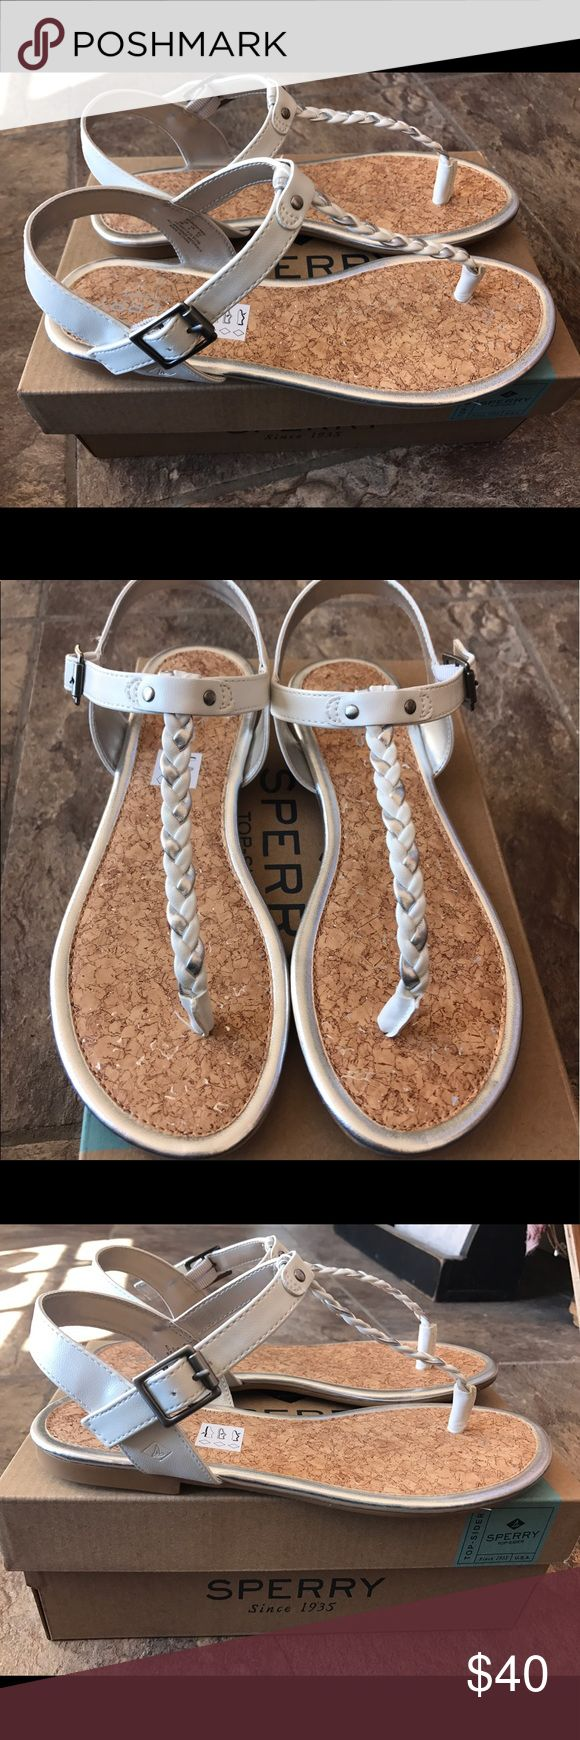 "Women's size 5 Sperry sandals Brand new in box ""Anchor away white/silver""  Size 5 women's sandals. These are so cute and perfect for spring/summer! Please ask any questions ☺️💜 Sperry Top-Sider Shoes Sandals"